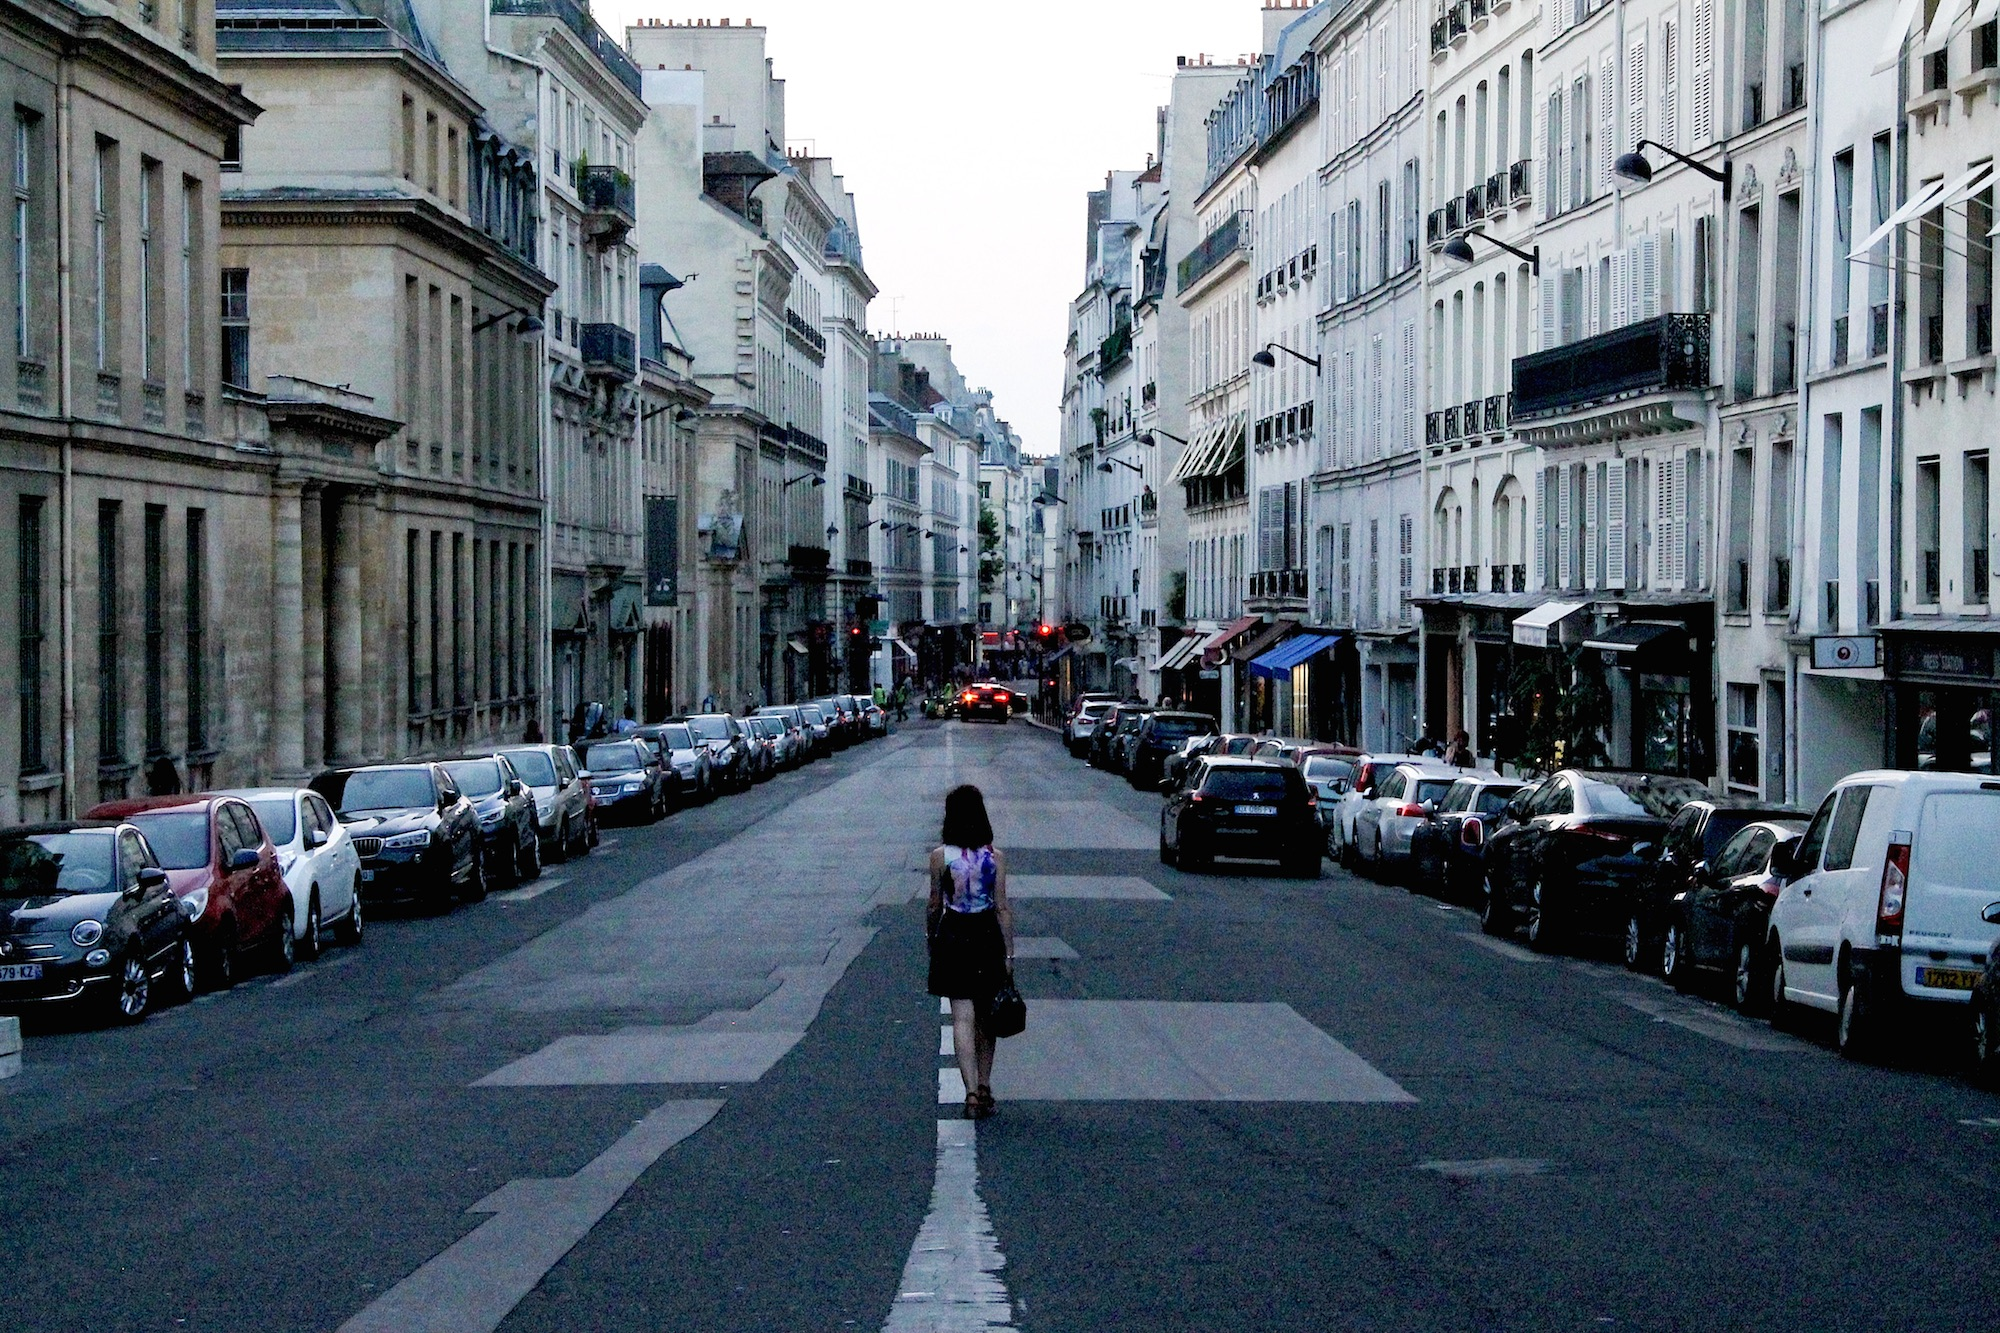 HiP Paris Blog explores what it's like to move to Paris alone